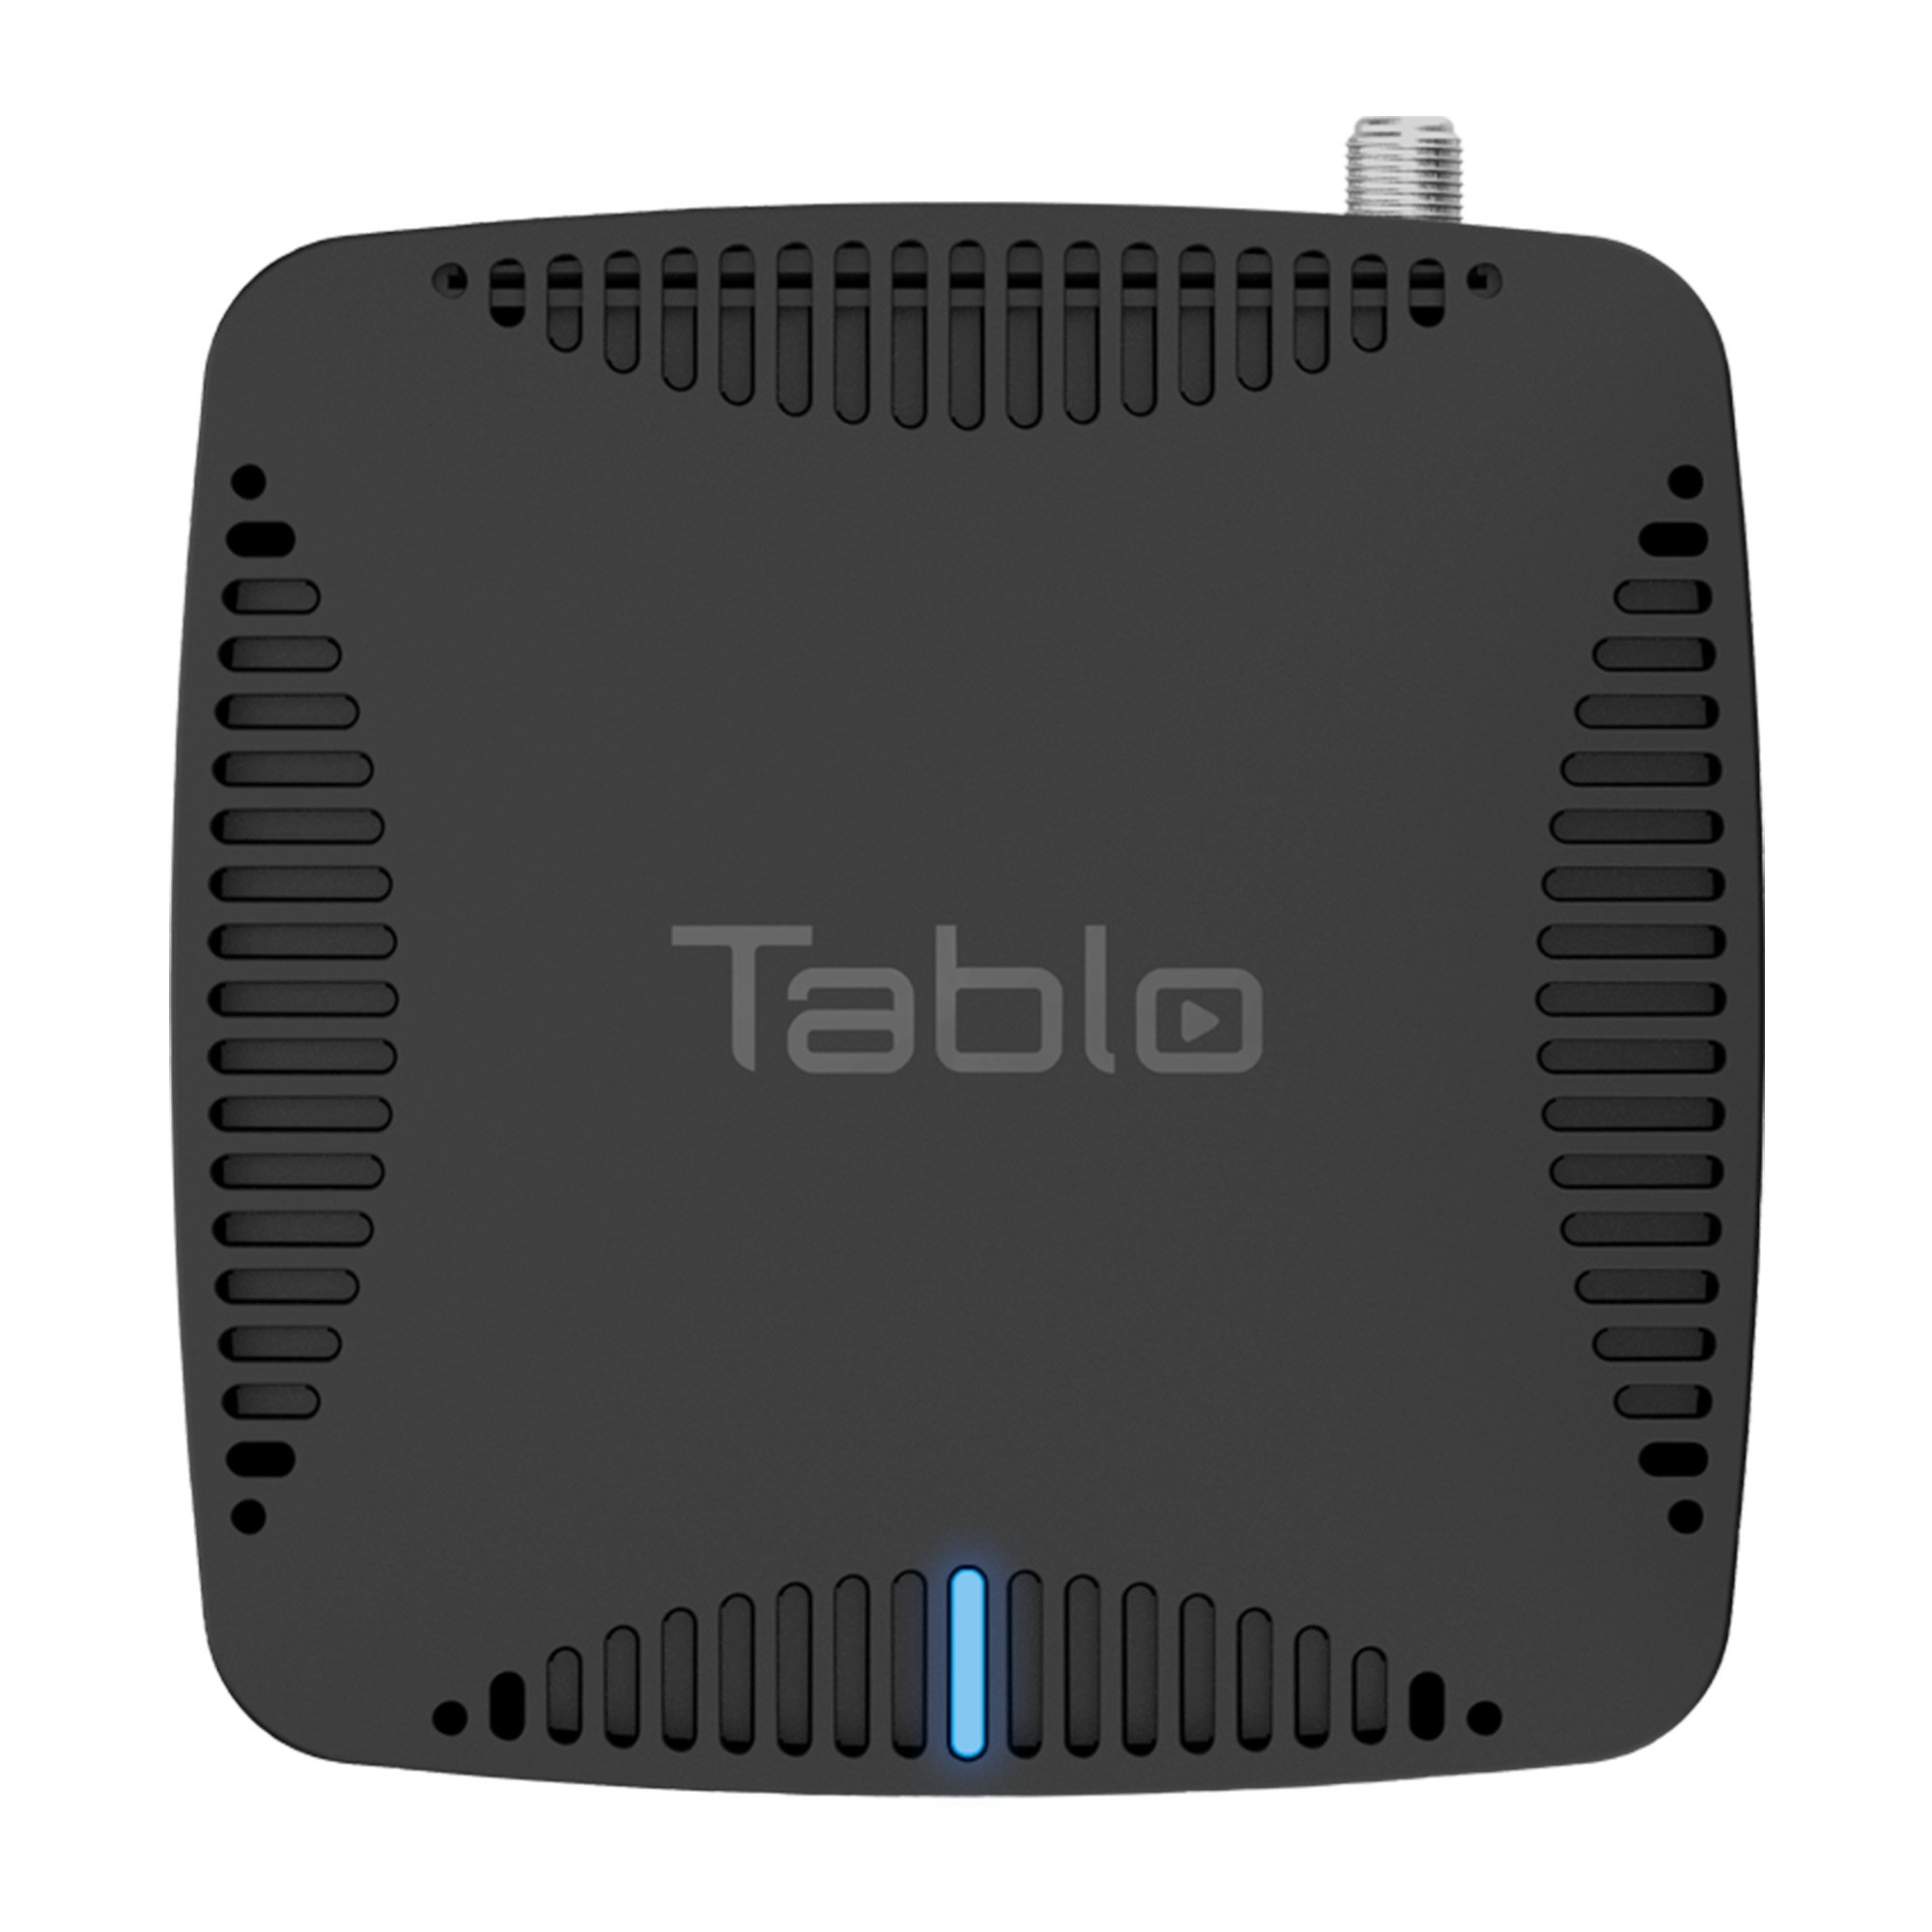 tablo-dual-lite-ota-dvr-for-cord-cutters-with-wifi-automatic-commercial-skip